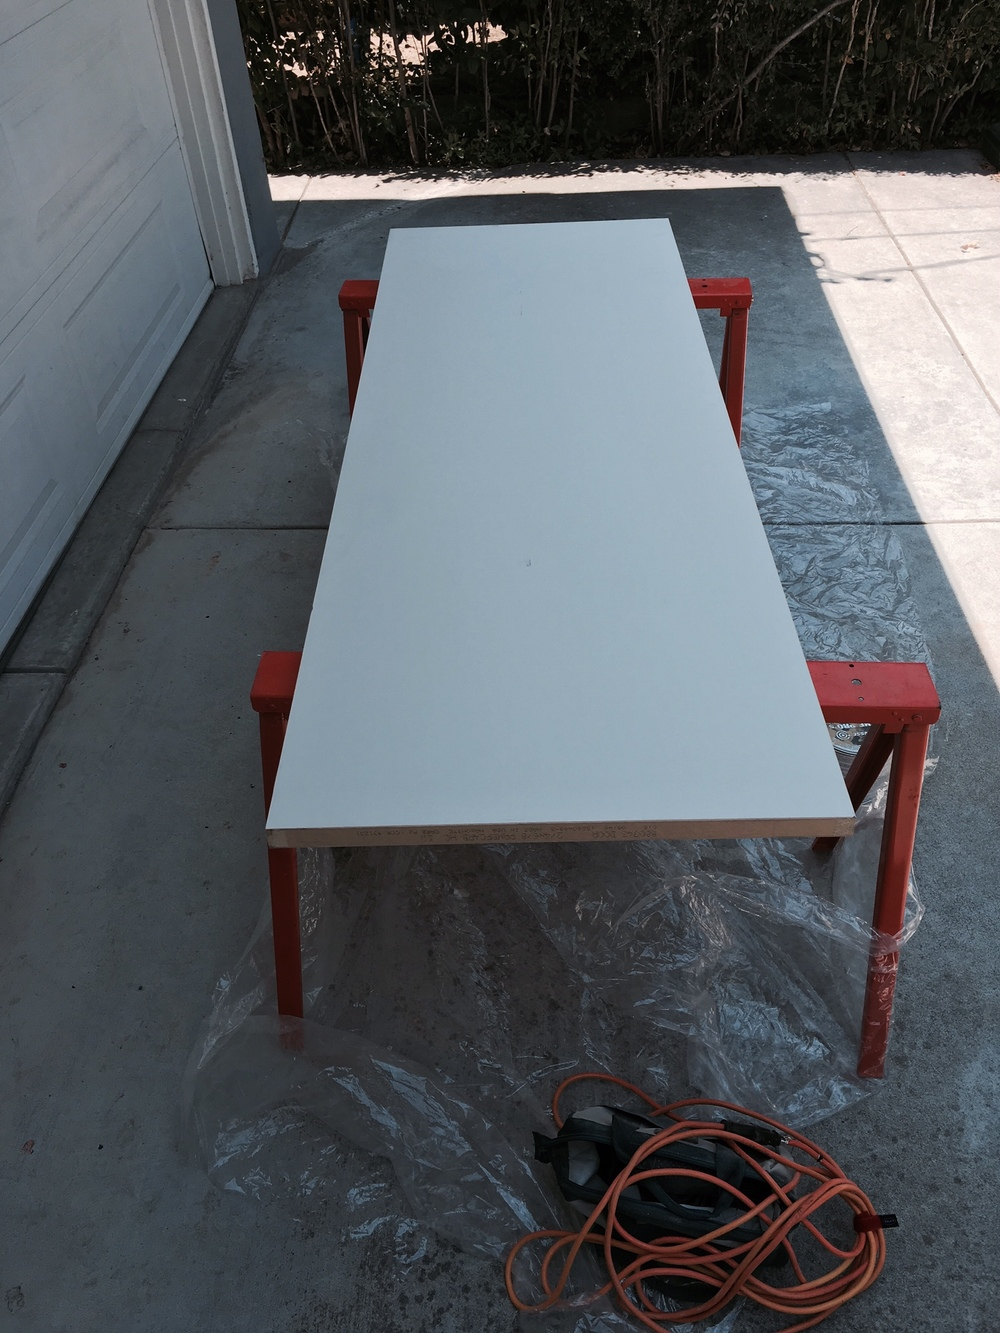 The easiest way to paint or sand any object is to raise it onto a table. I used these portable saw horses and tried to keep it in the shade.